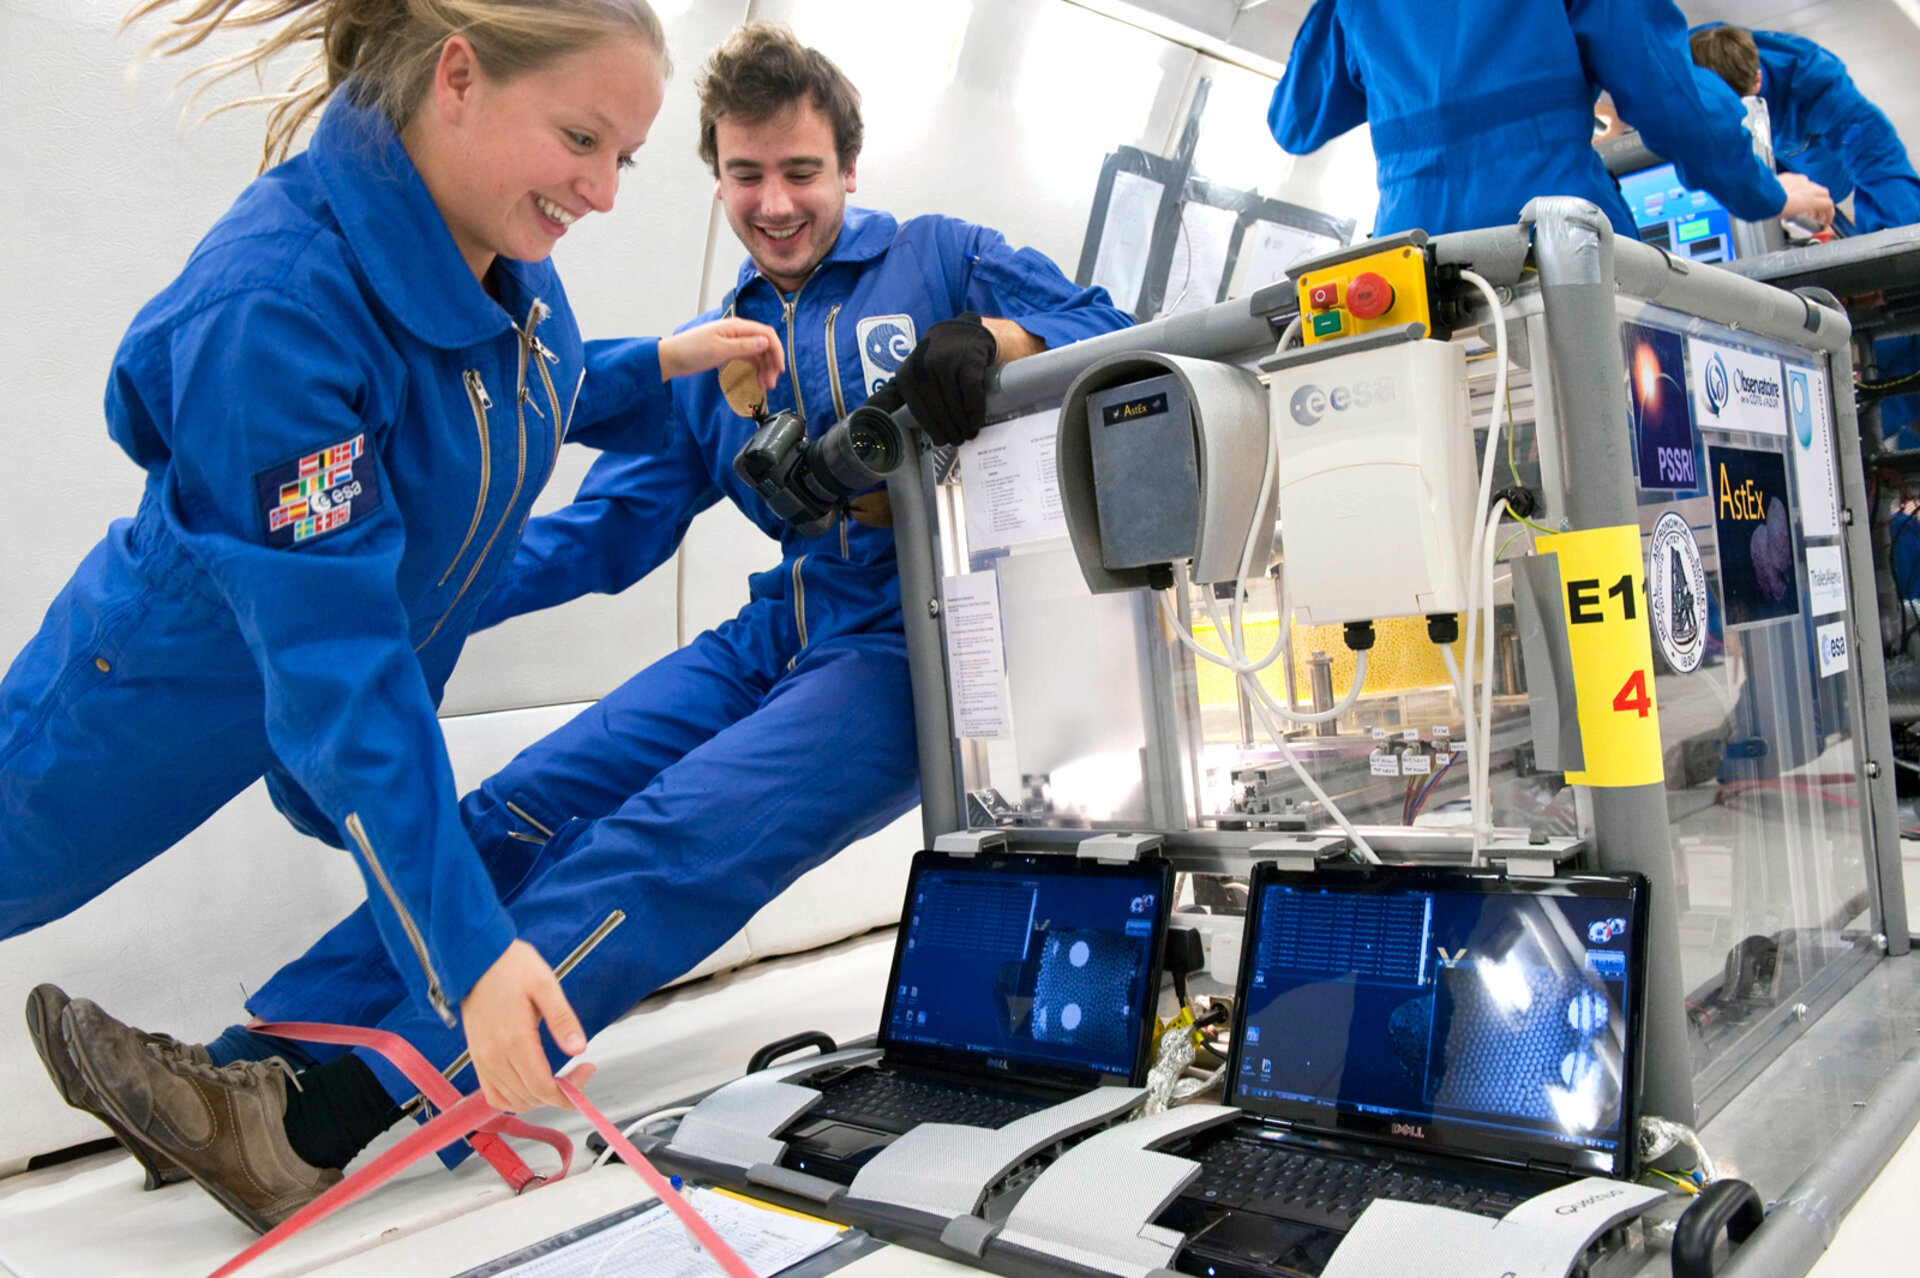 Students in microgravity